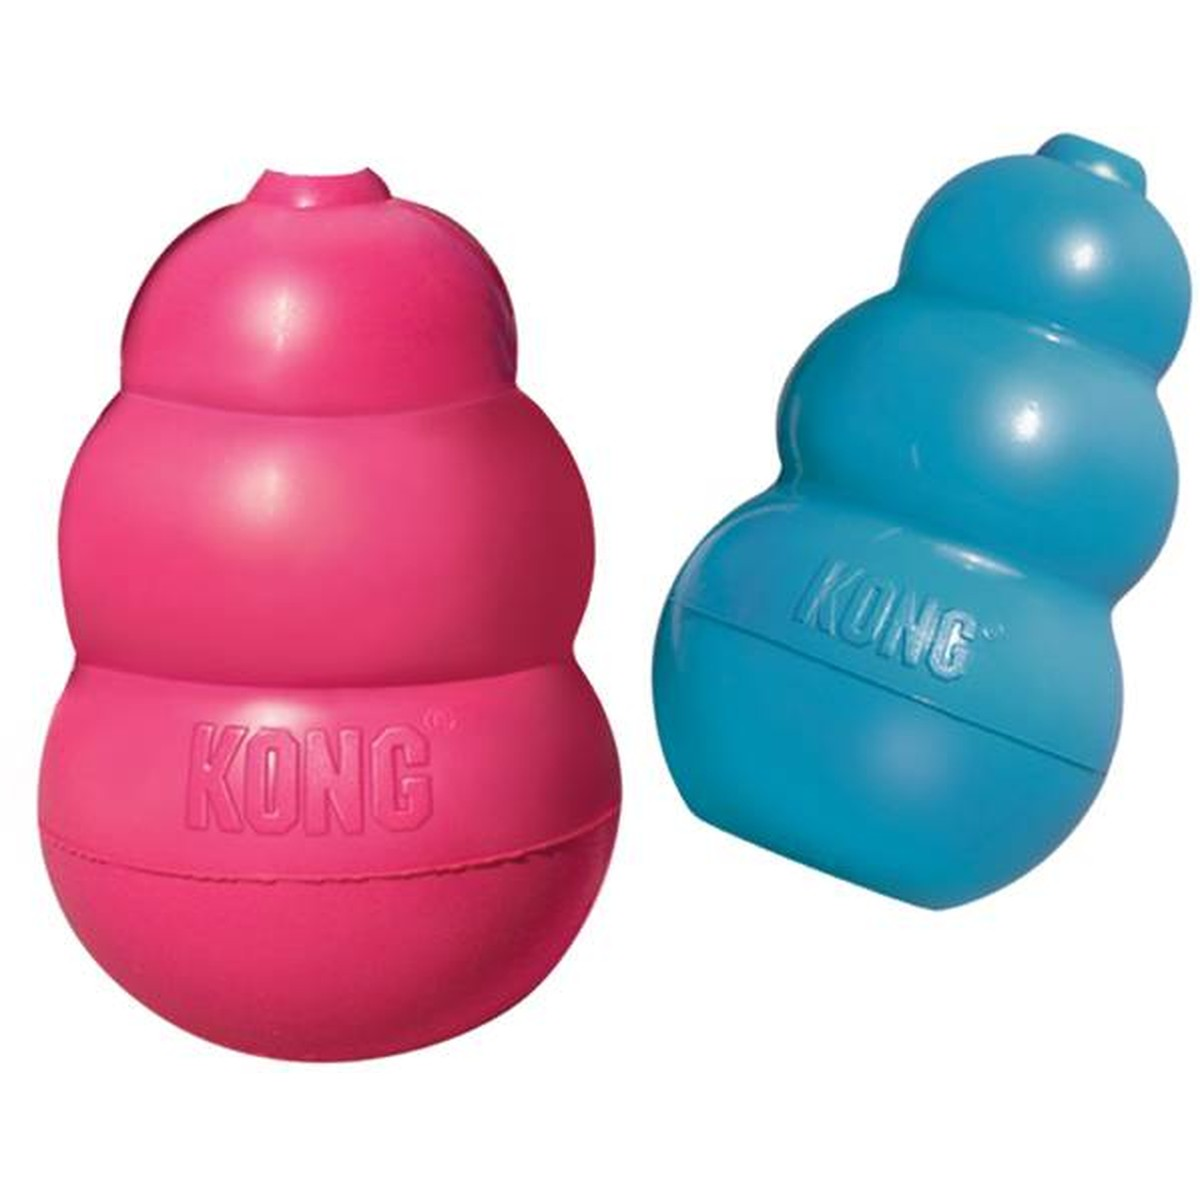 Kong Puppy Squeaker  S Multi-couleurs S